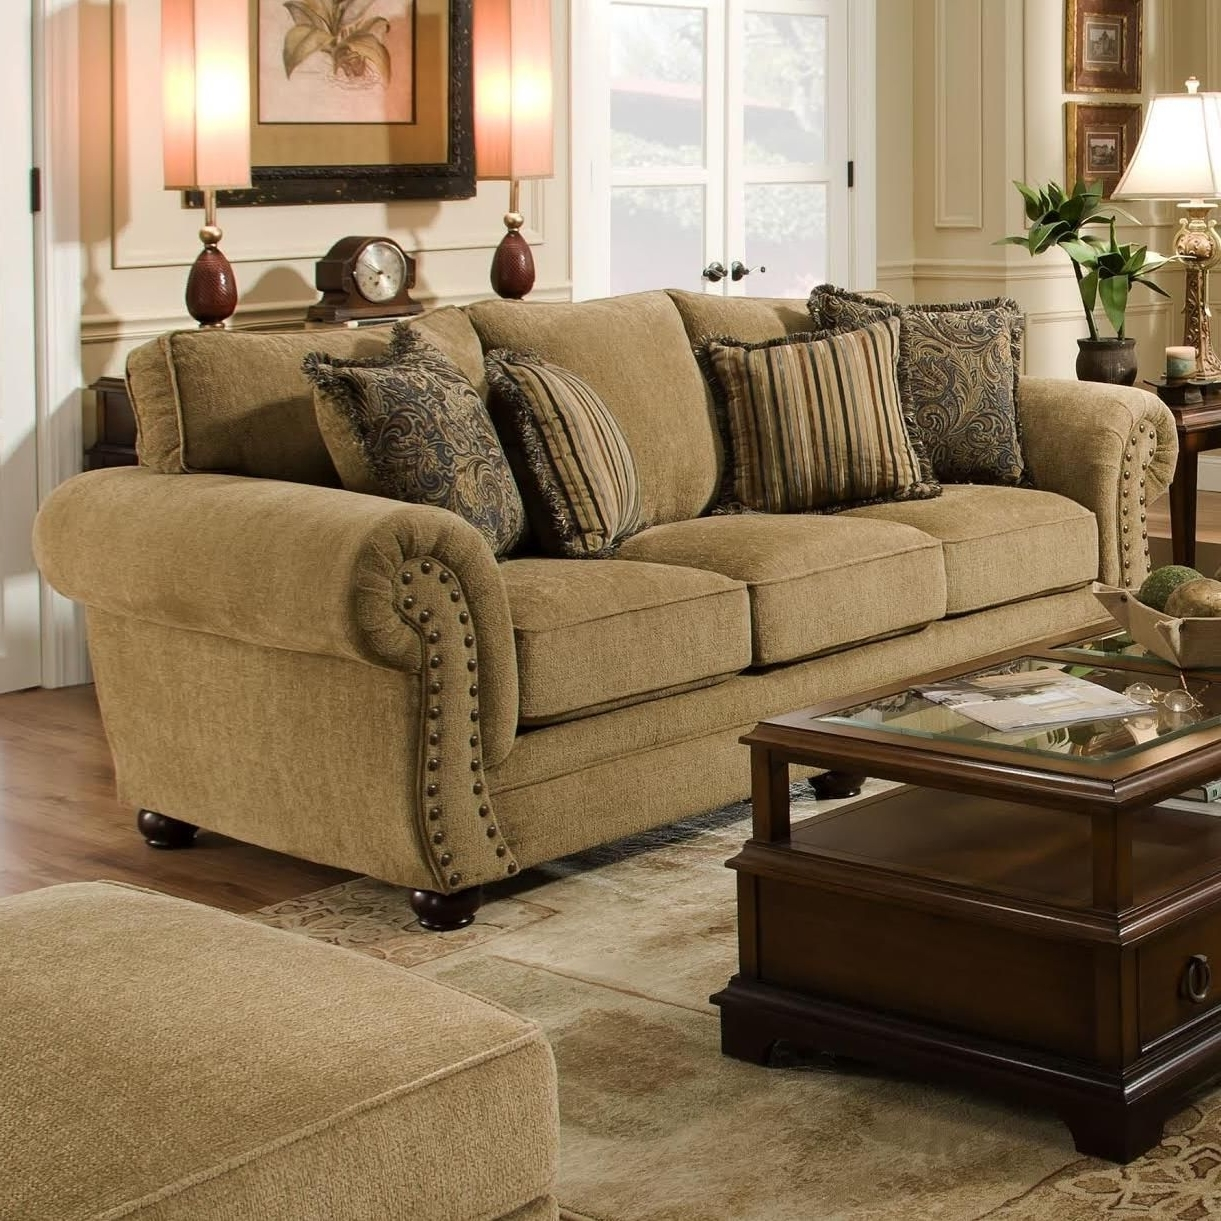 Miskelly Furniture Pertaining To Jackson Ms Sectional Sofas (View 20 of 20)